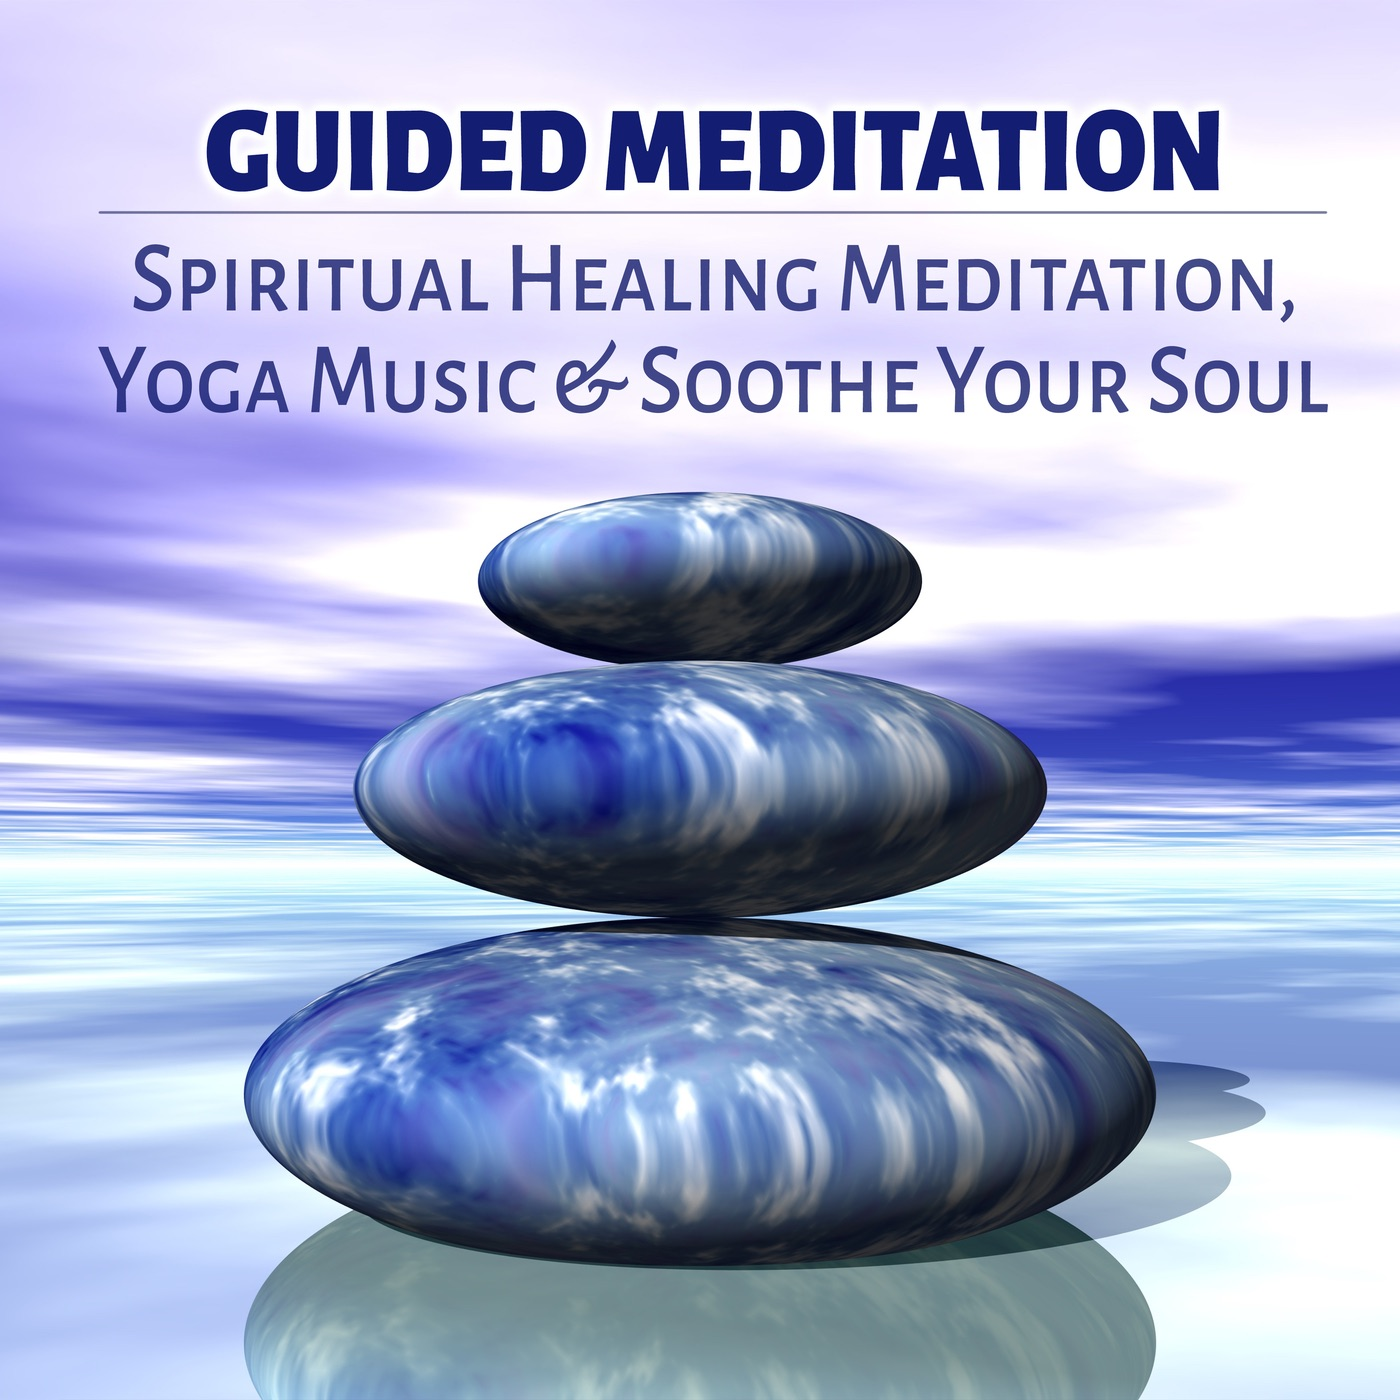 MP3 Songs Online:♫ Reduce Stress and Sleep - Healing Meditation Zone album Guided Meditation - Spiritual Healing Meditation, Yoga Music & Soothe Your Soul. New Age,Music,Instrumental listen to music online free without downloading.